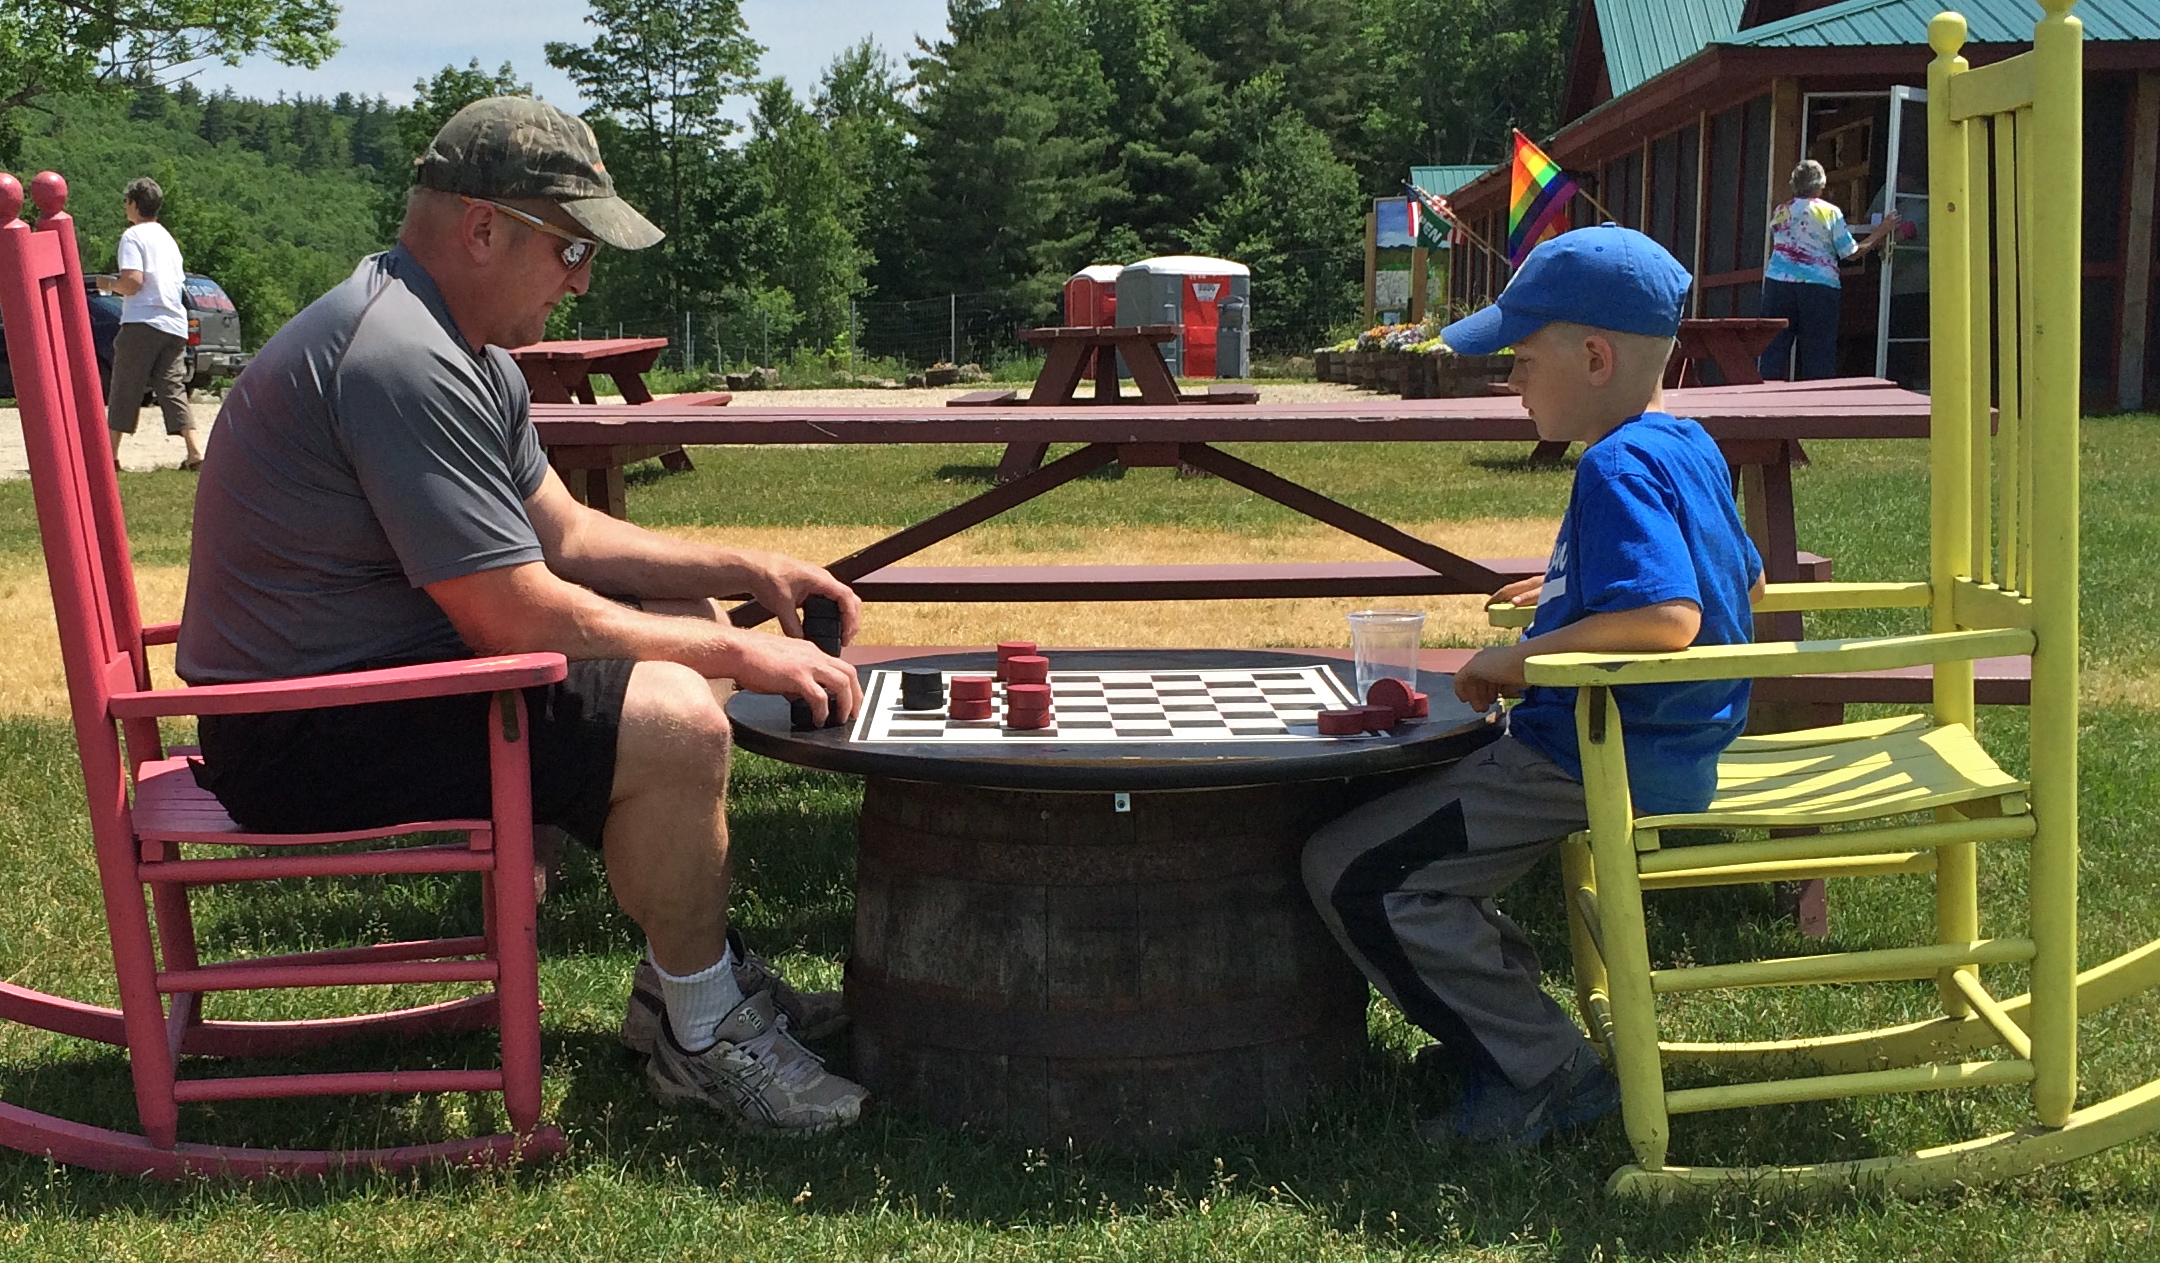 Enjoy an Outdoor Game of Checkers